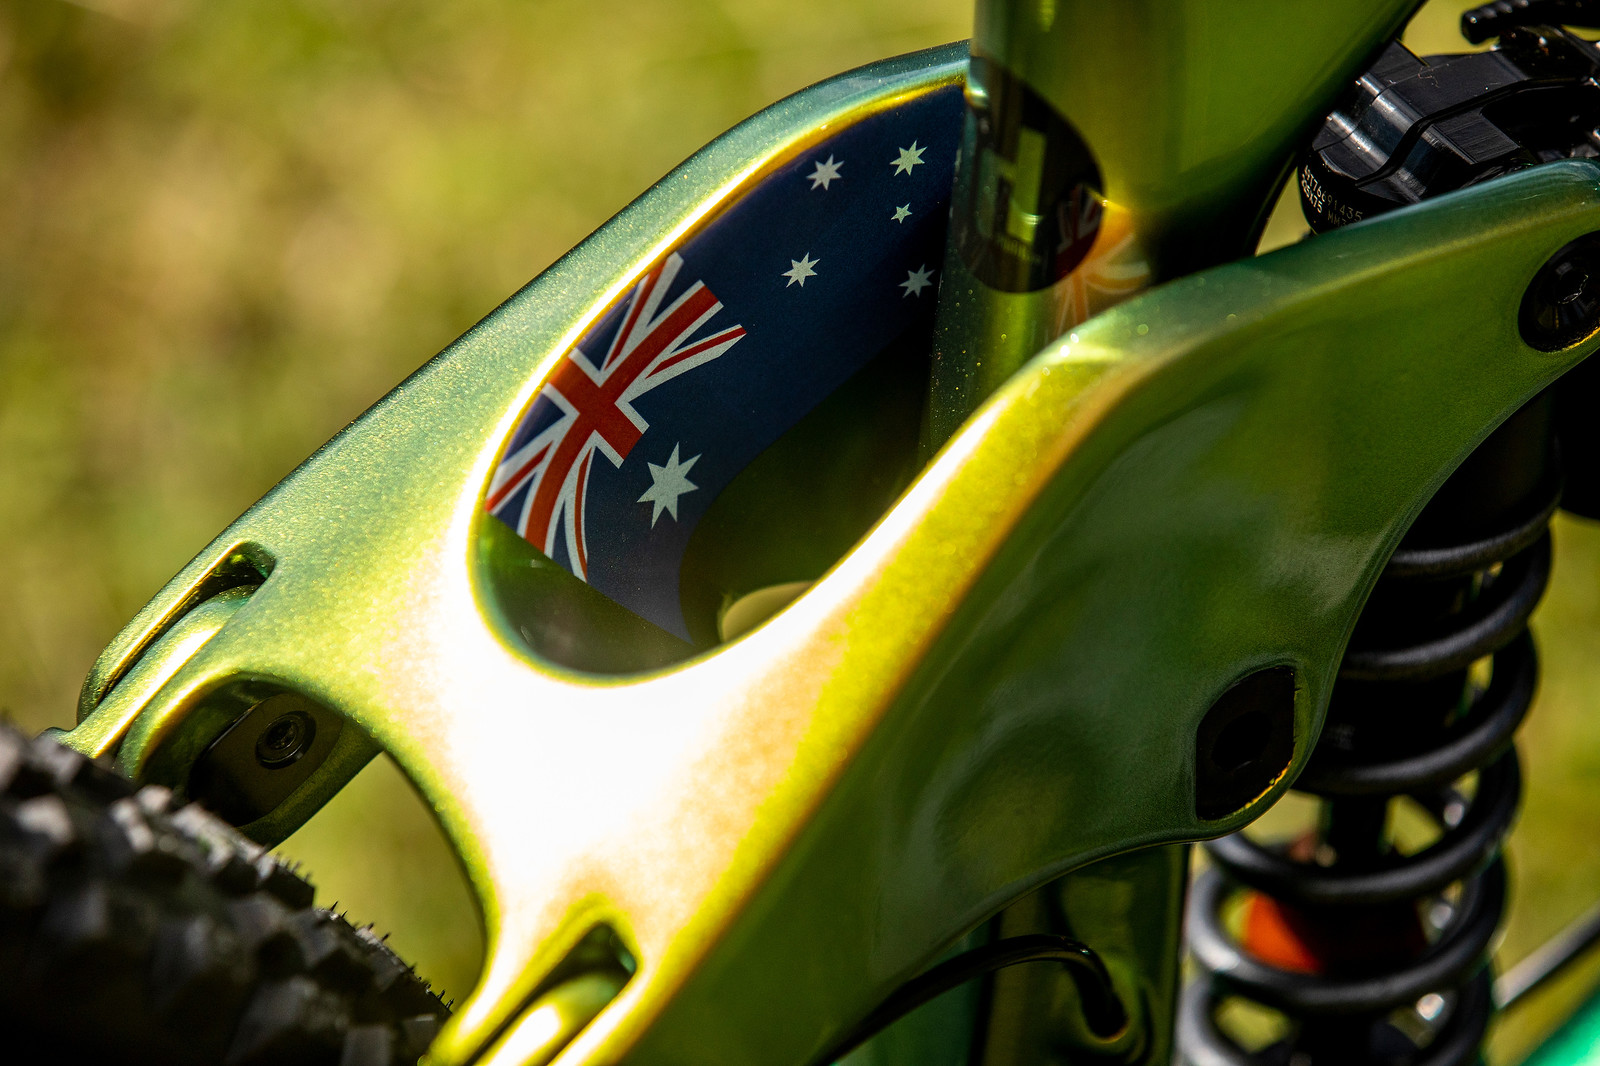 No, Seriously, the Details - WORLD CHAMPS BIKE - Connor Fearon's Kona Operator - Mountain Biking Pictures - Vital MTB